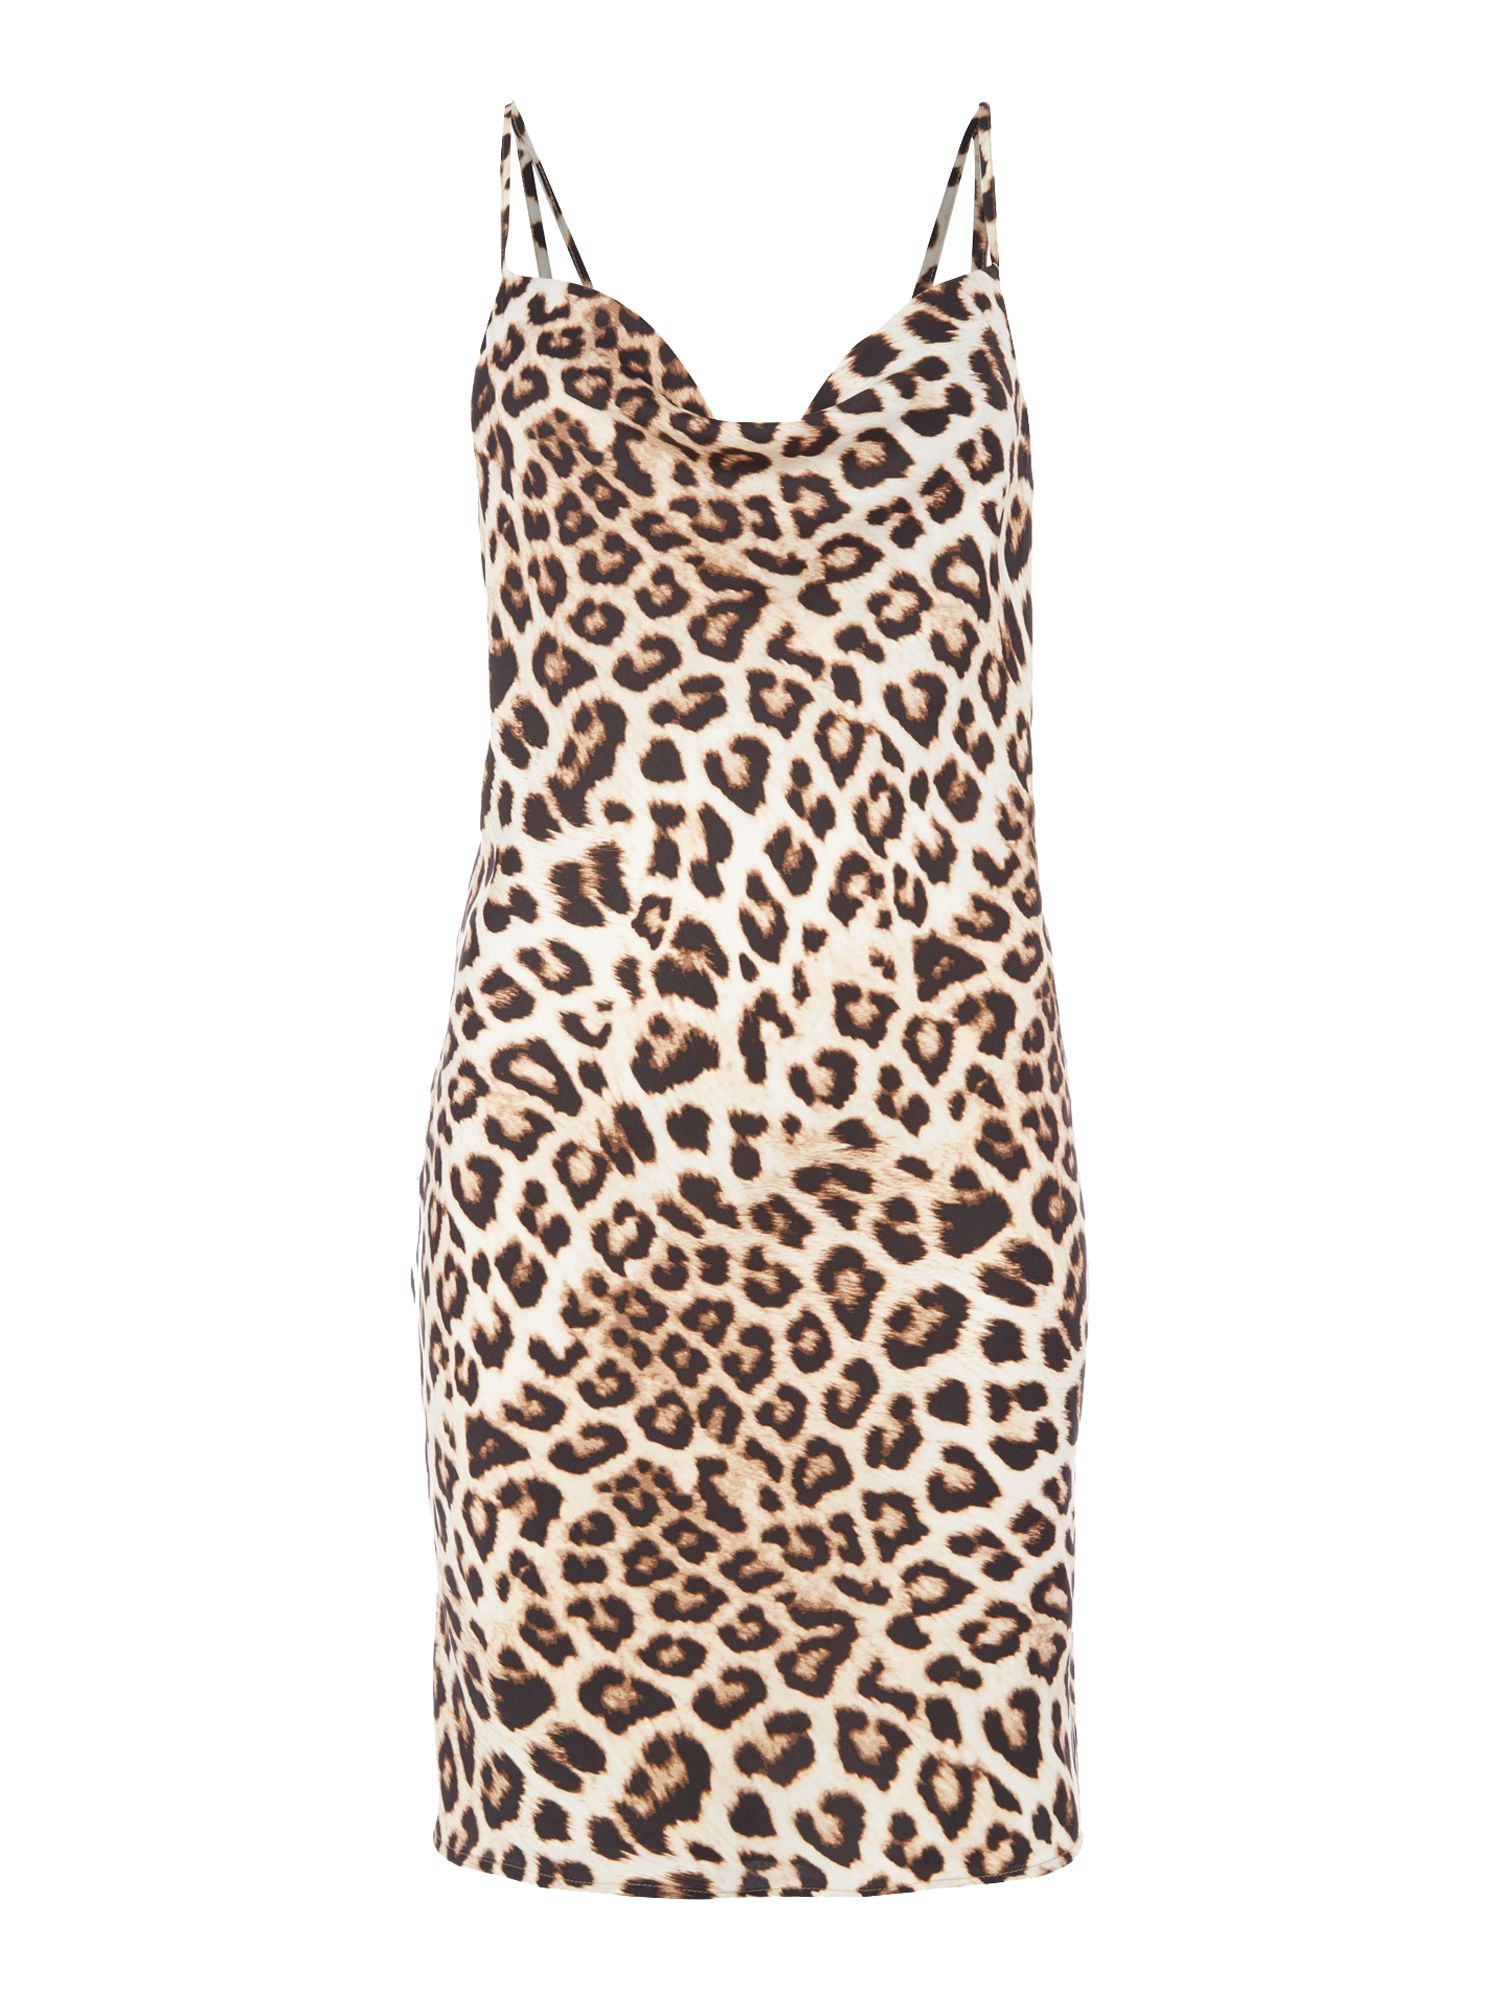 Bardot Sleeveless Leopard Print Dress, Multi-Coloured